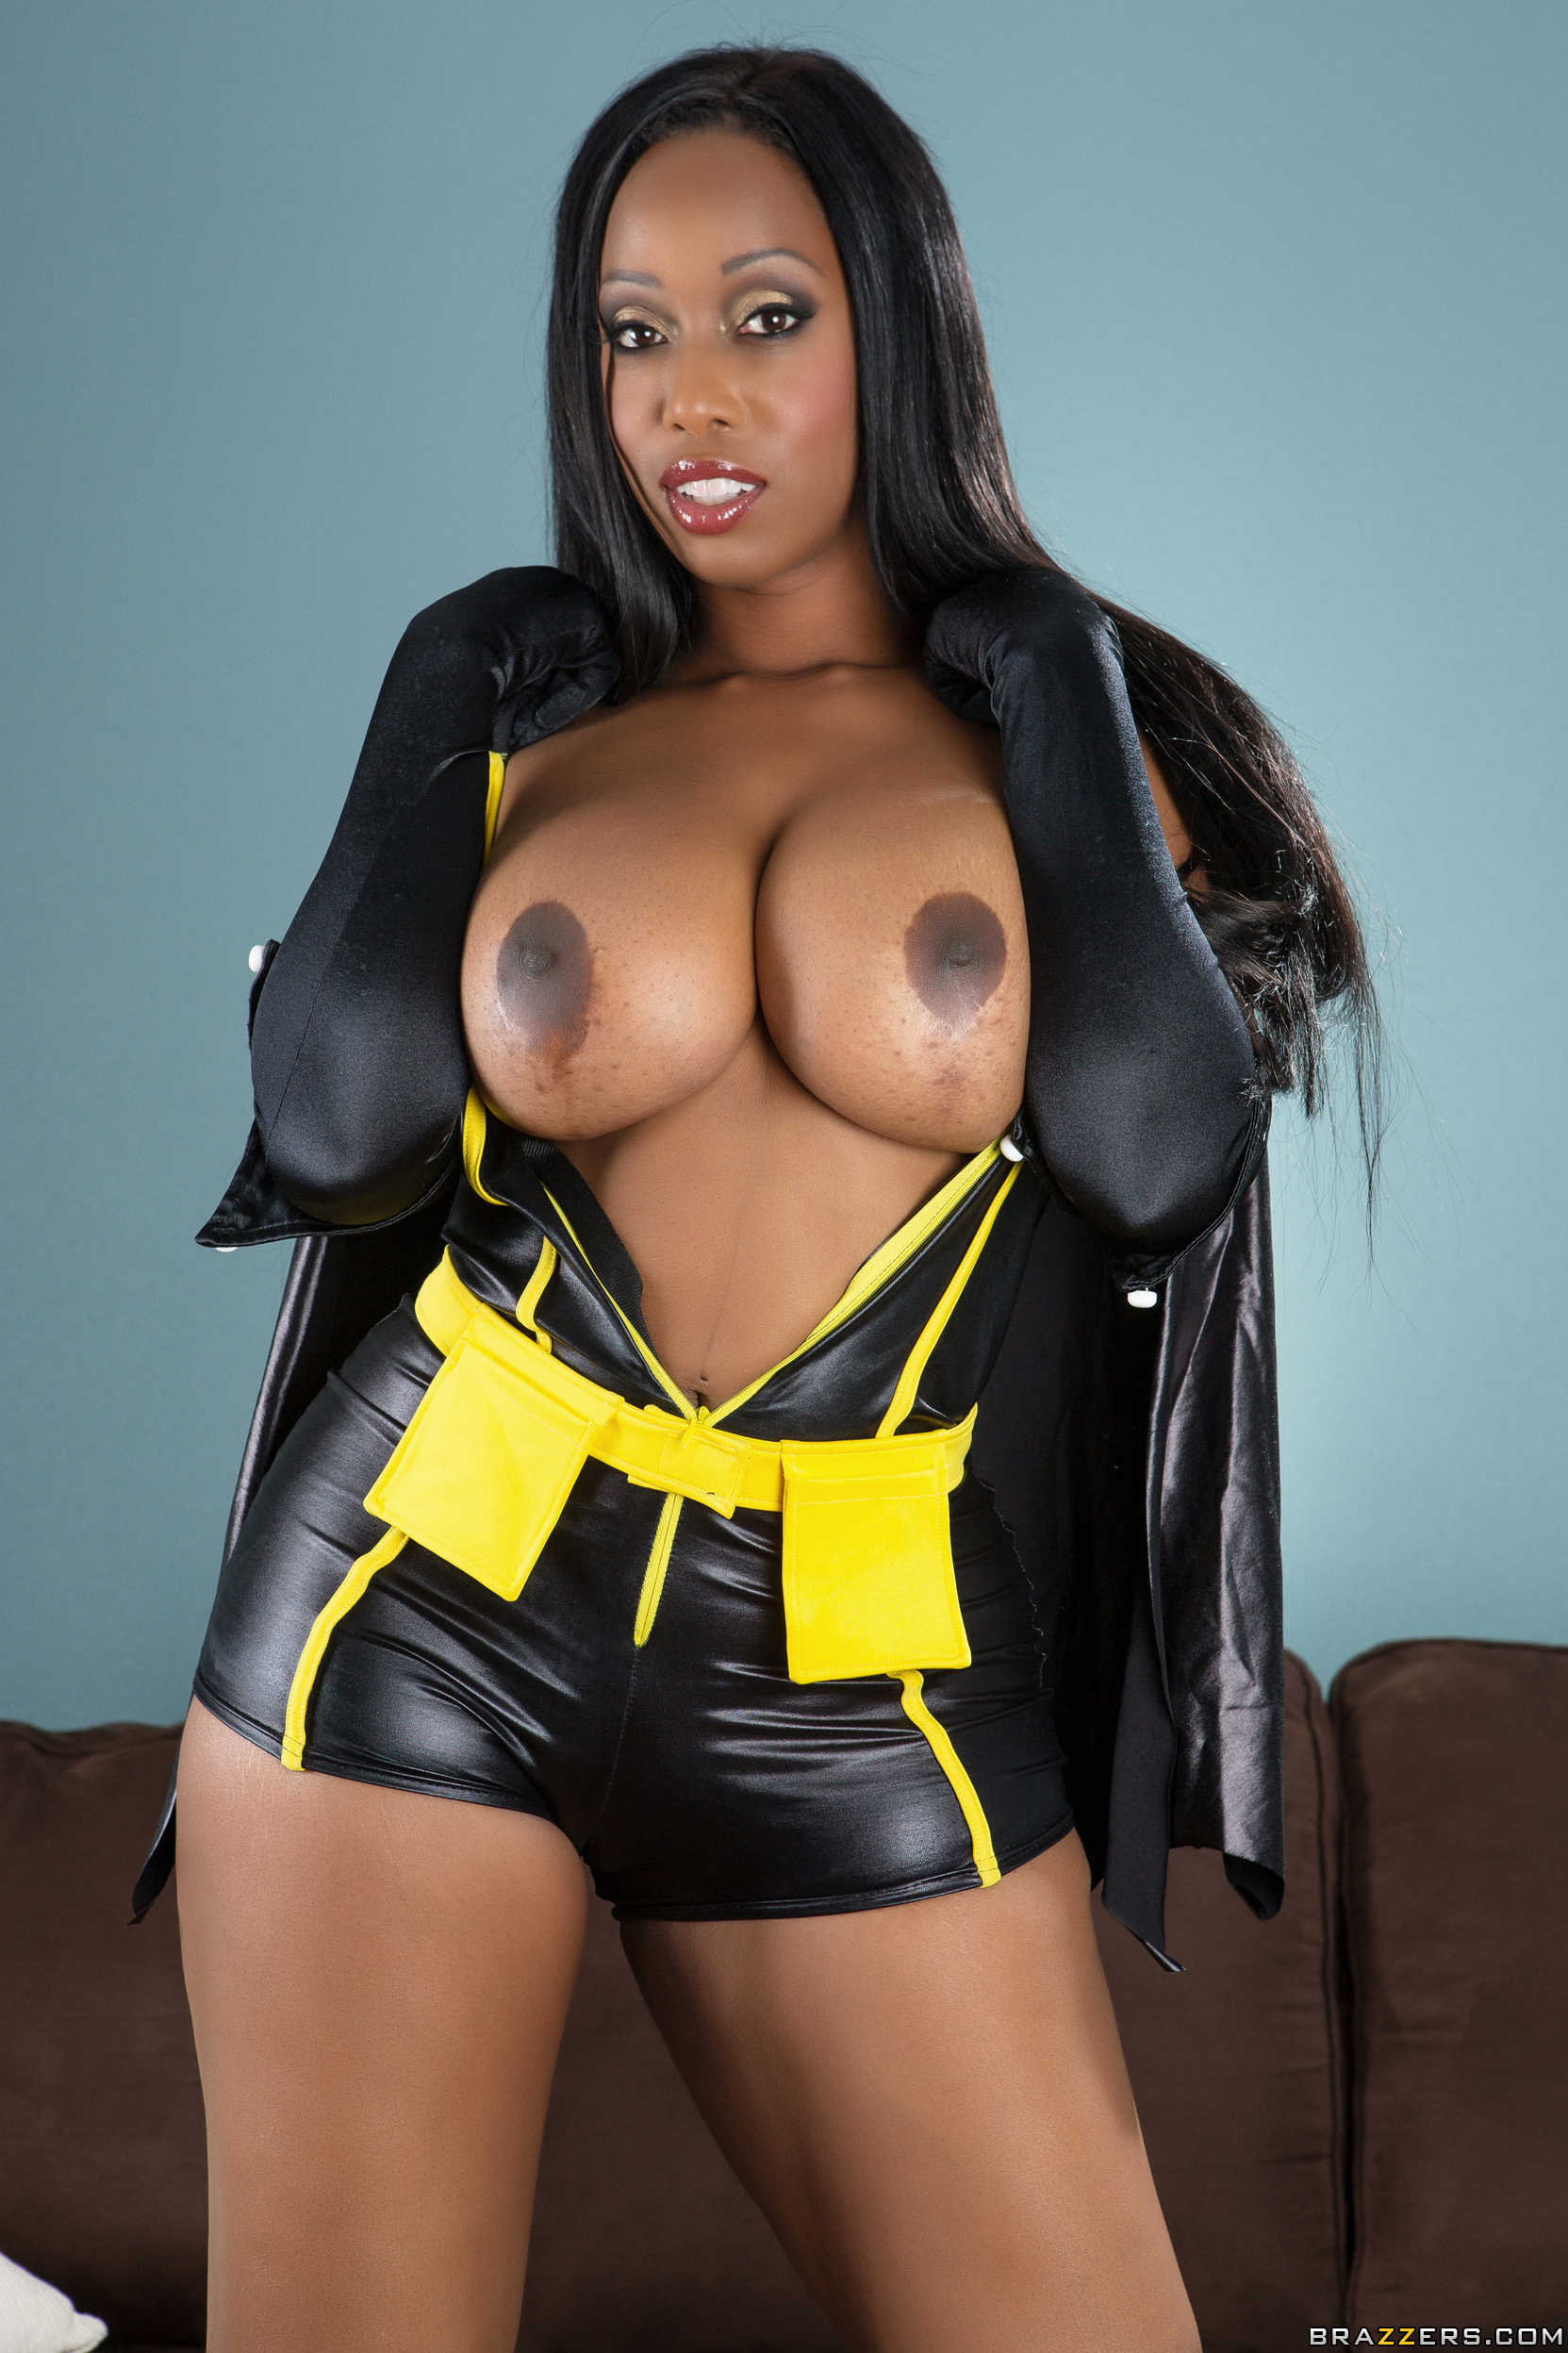 Brazzers Black Big Tits - Codi Bryant in Super Tits